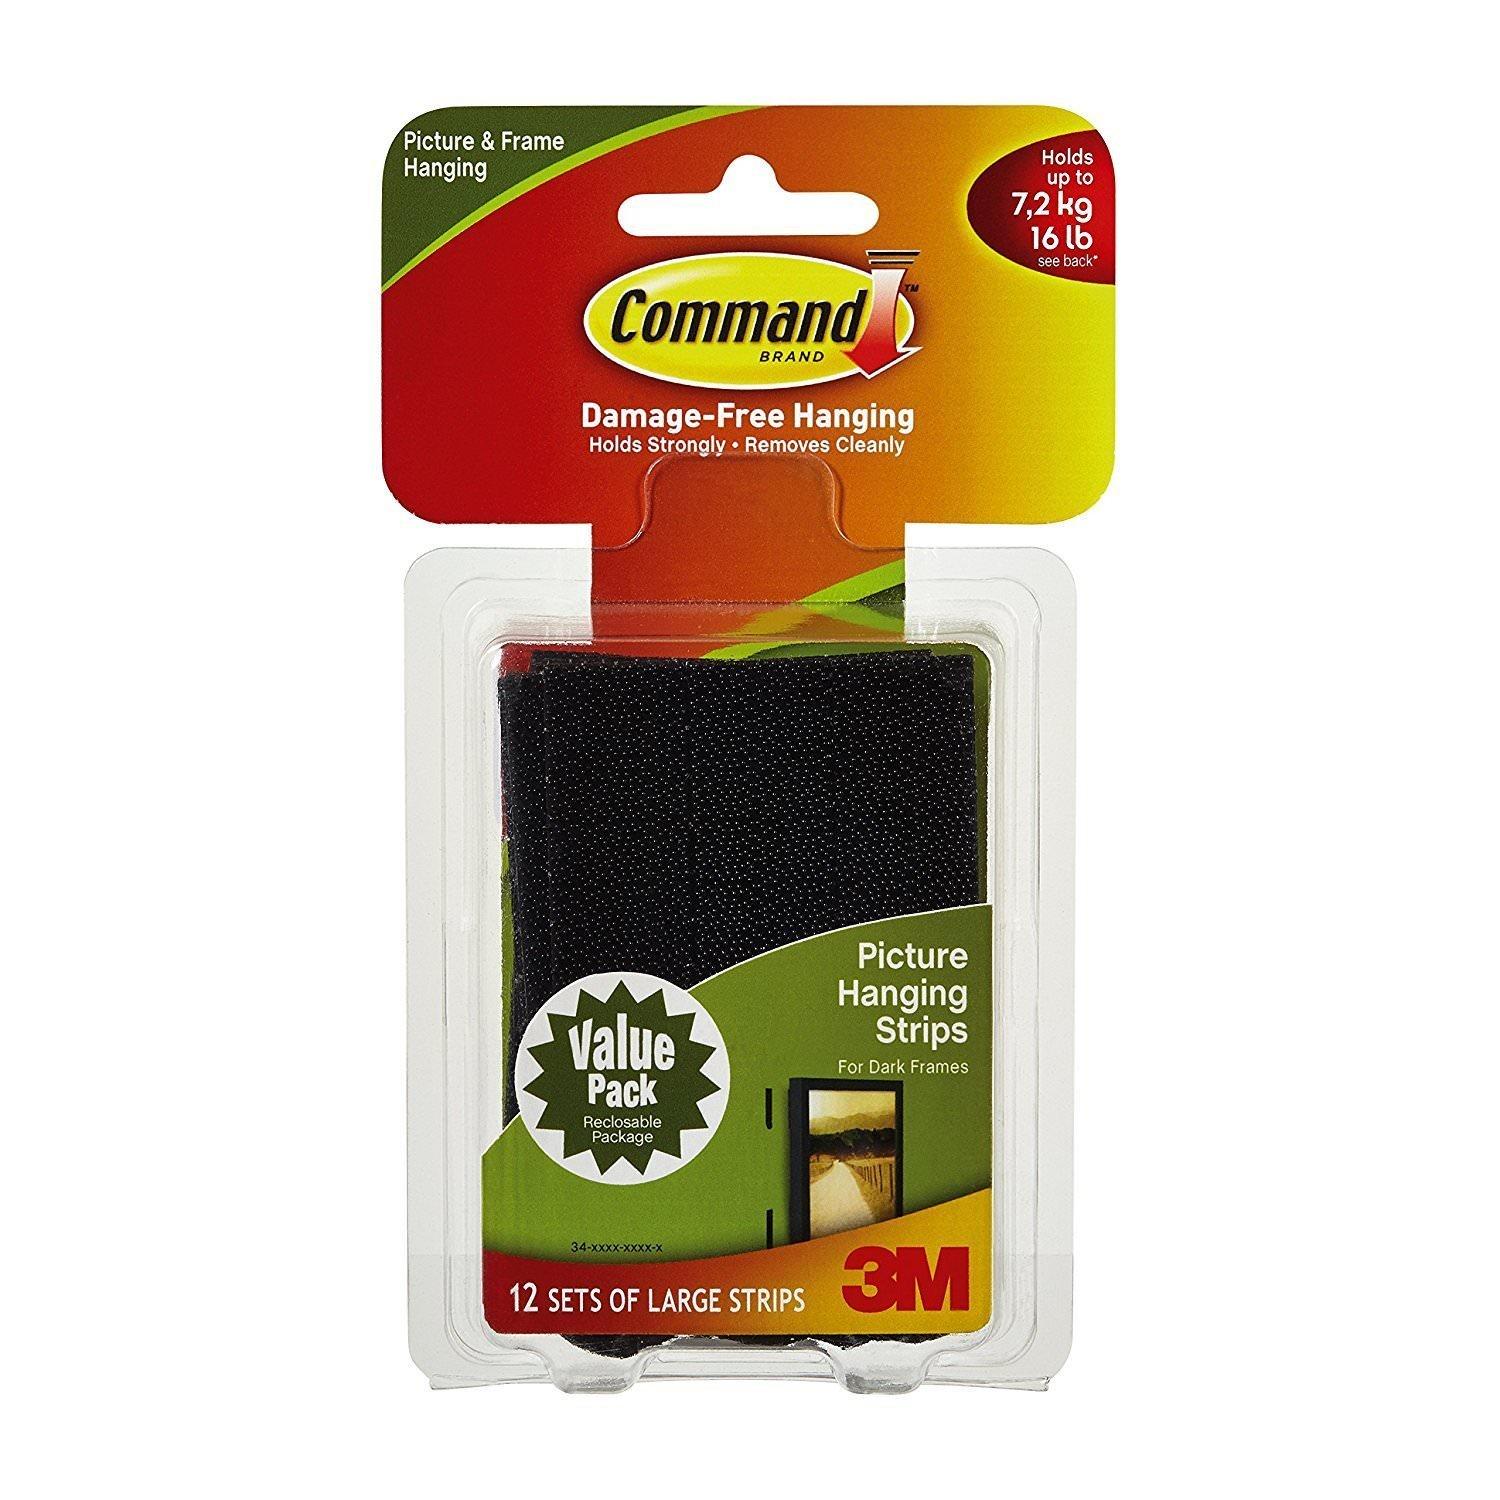 Command BuolWG Picture Hanging Strips, Large, Black, 24 Pairs (2 Units) by Command